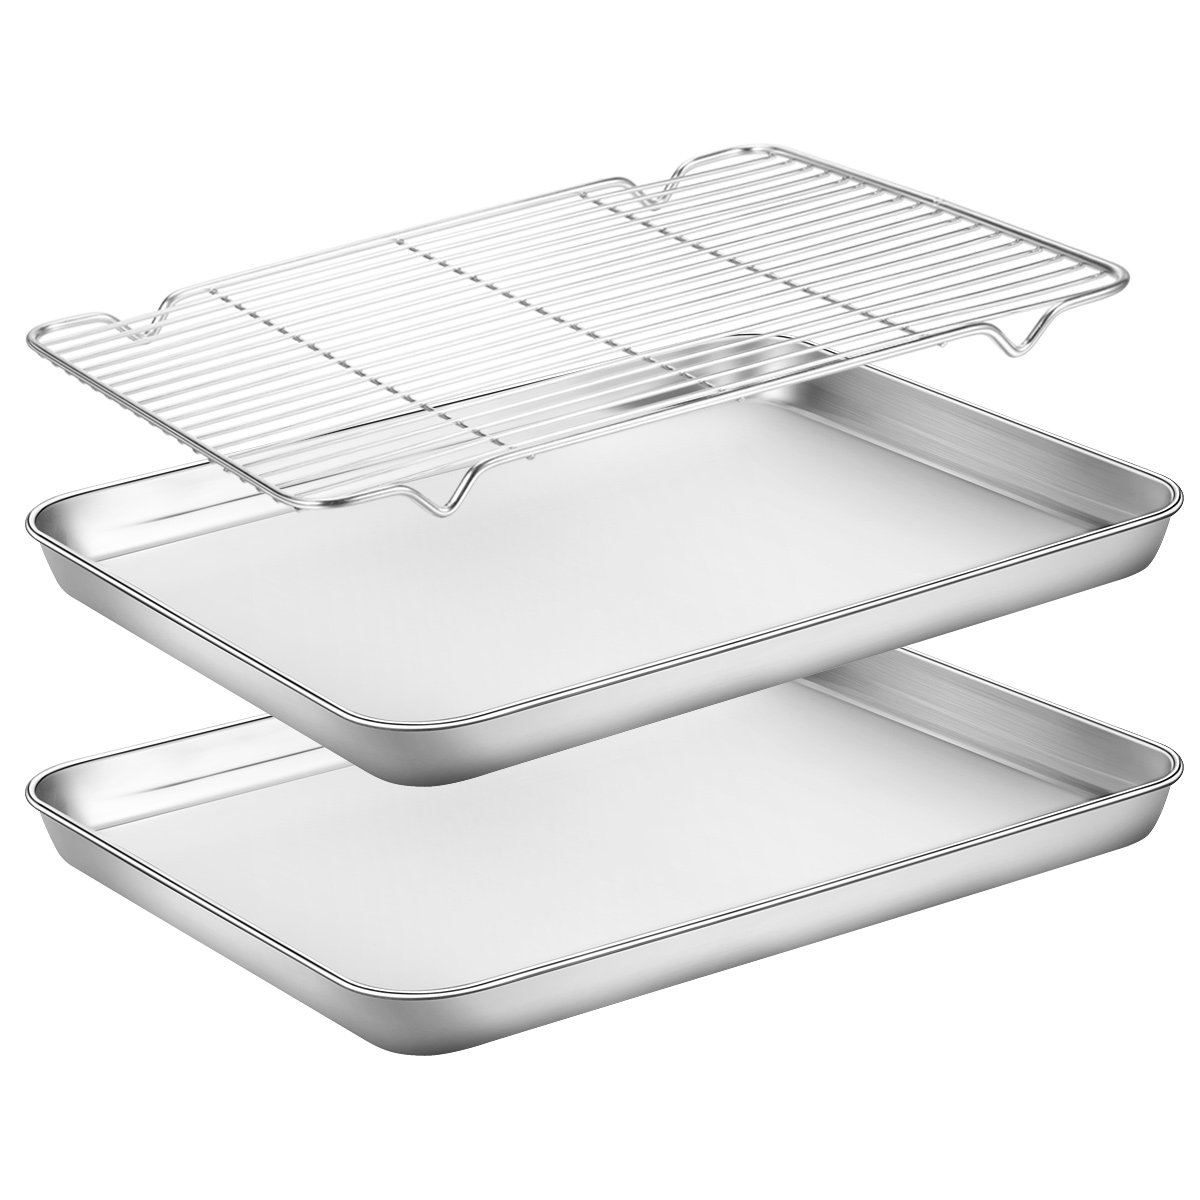 Baking Sheets with Rack, HKJ Chef Cookie Sheets and Nonstick Cooling Rack & Baking Pans for Oven & Toaster Oven Tray Pans, Rectangle Size 12L x 10W x 1H inch & Non Toxic & Healthy, Easy Clean